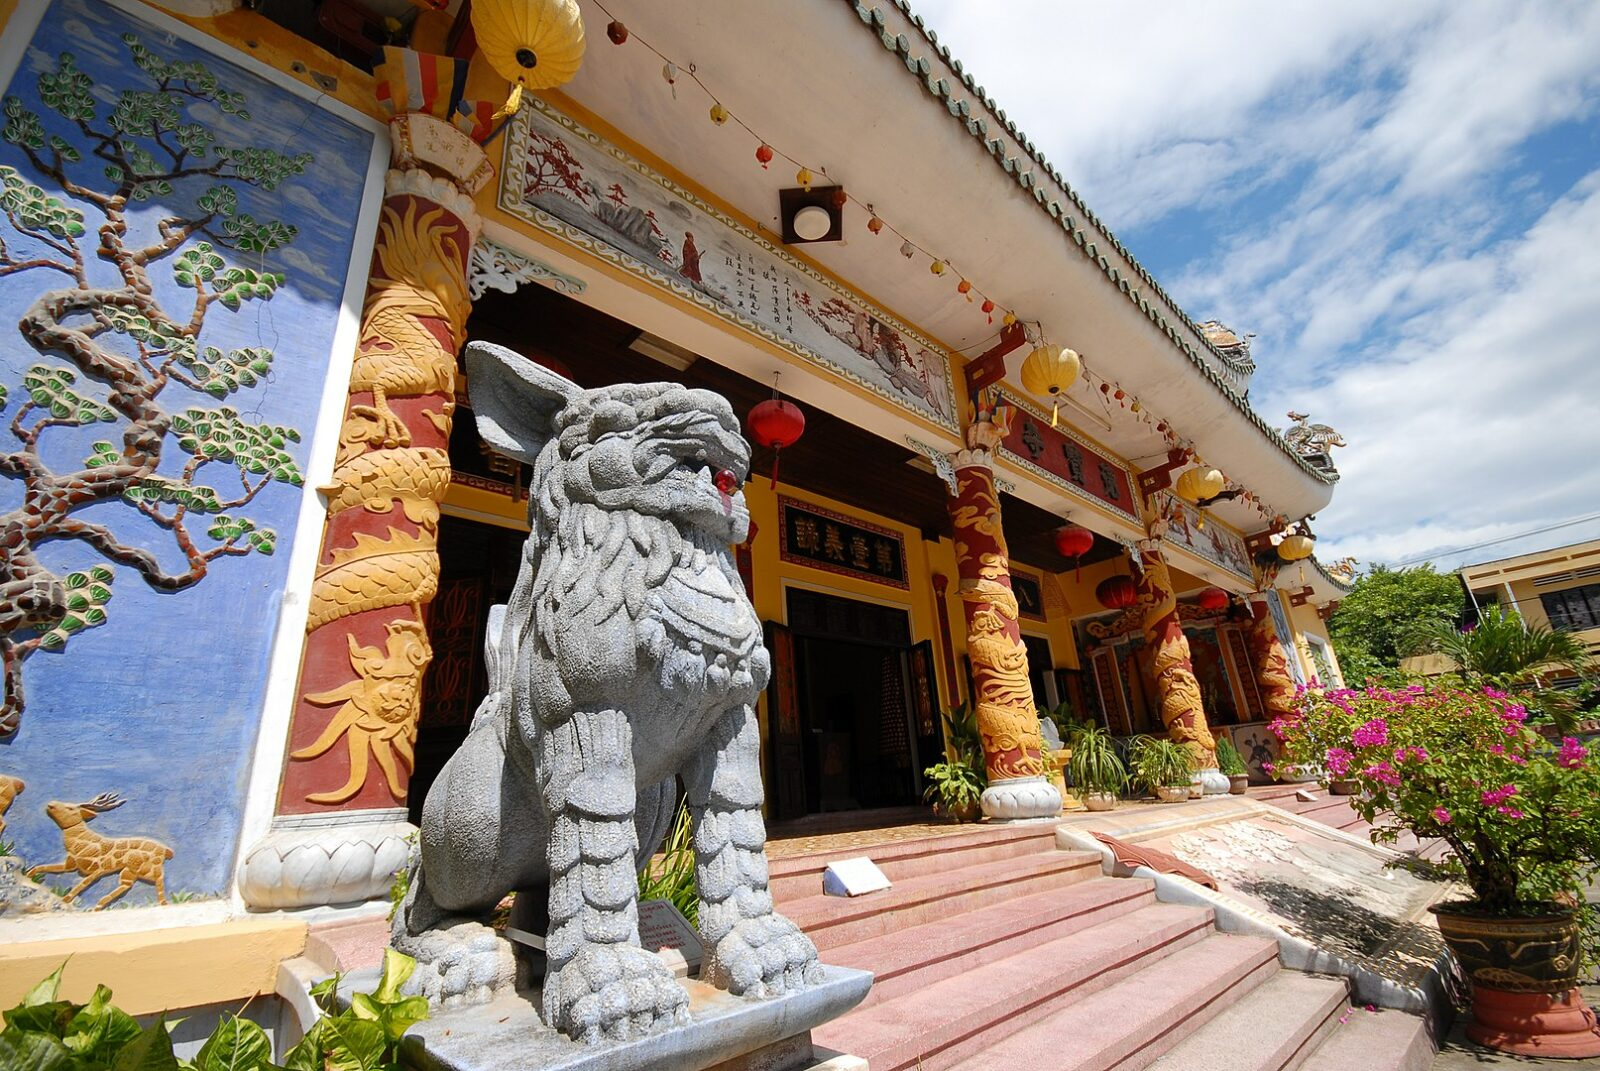 Image of a state and temple in Hoi An's ancient town in Vietnam